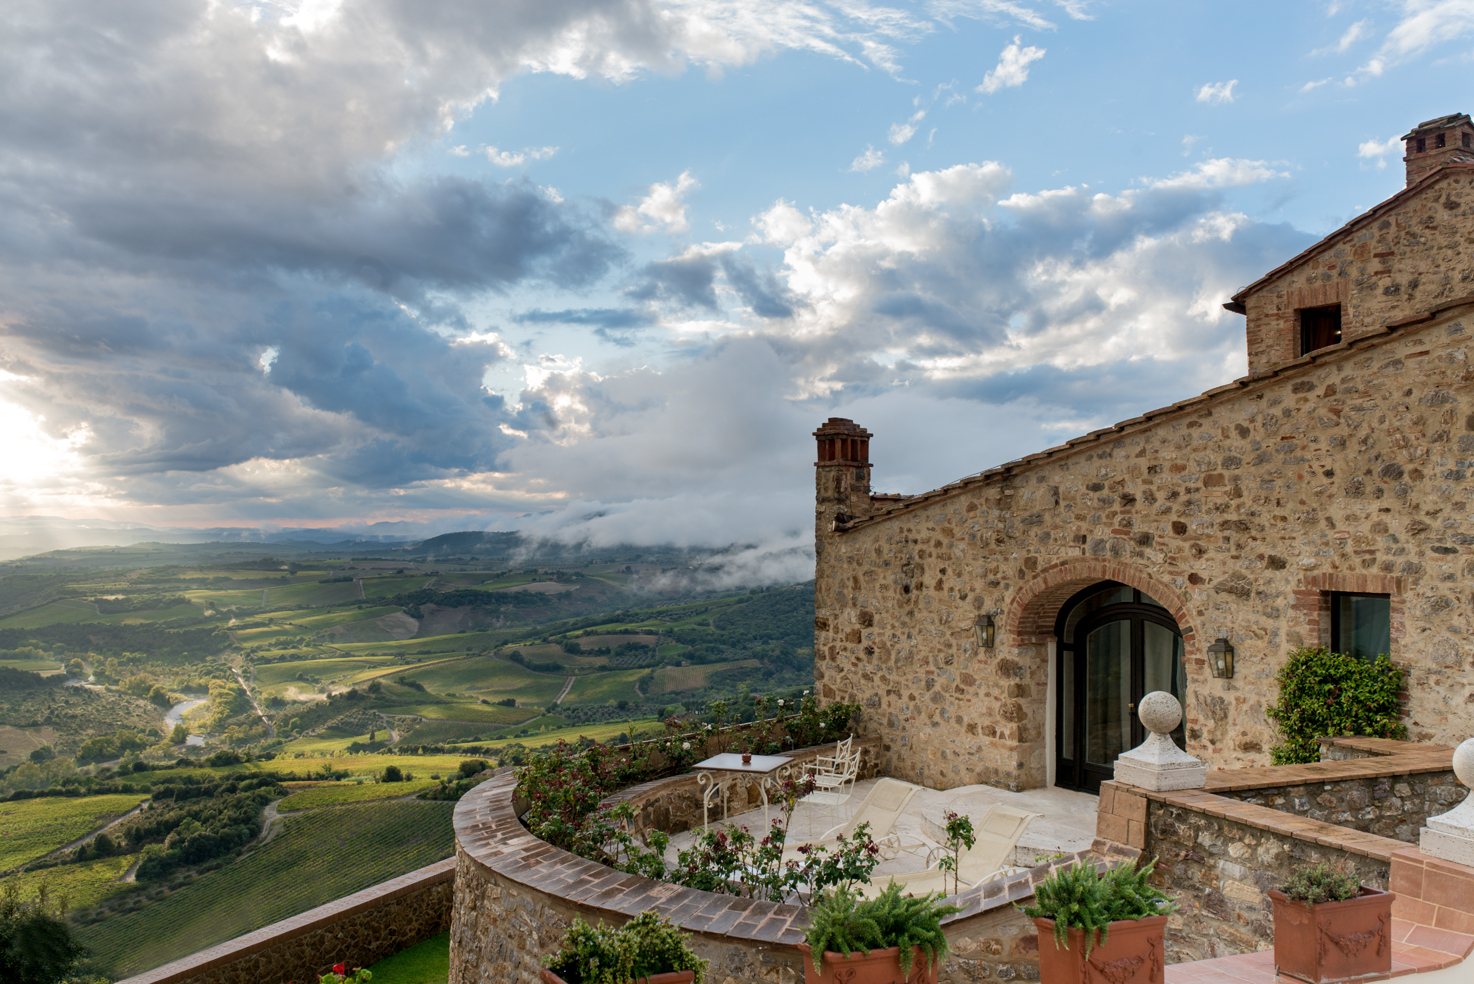 View over the hills of Tuscany